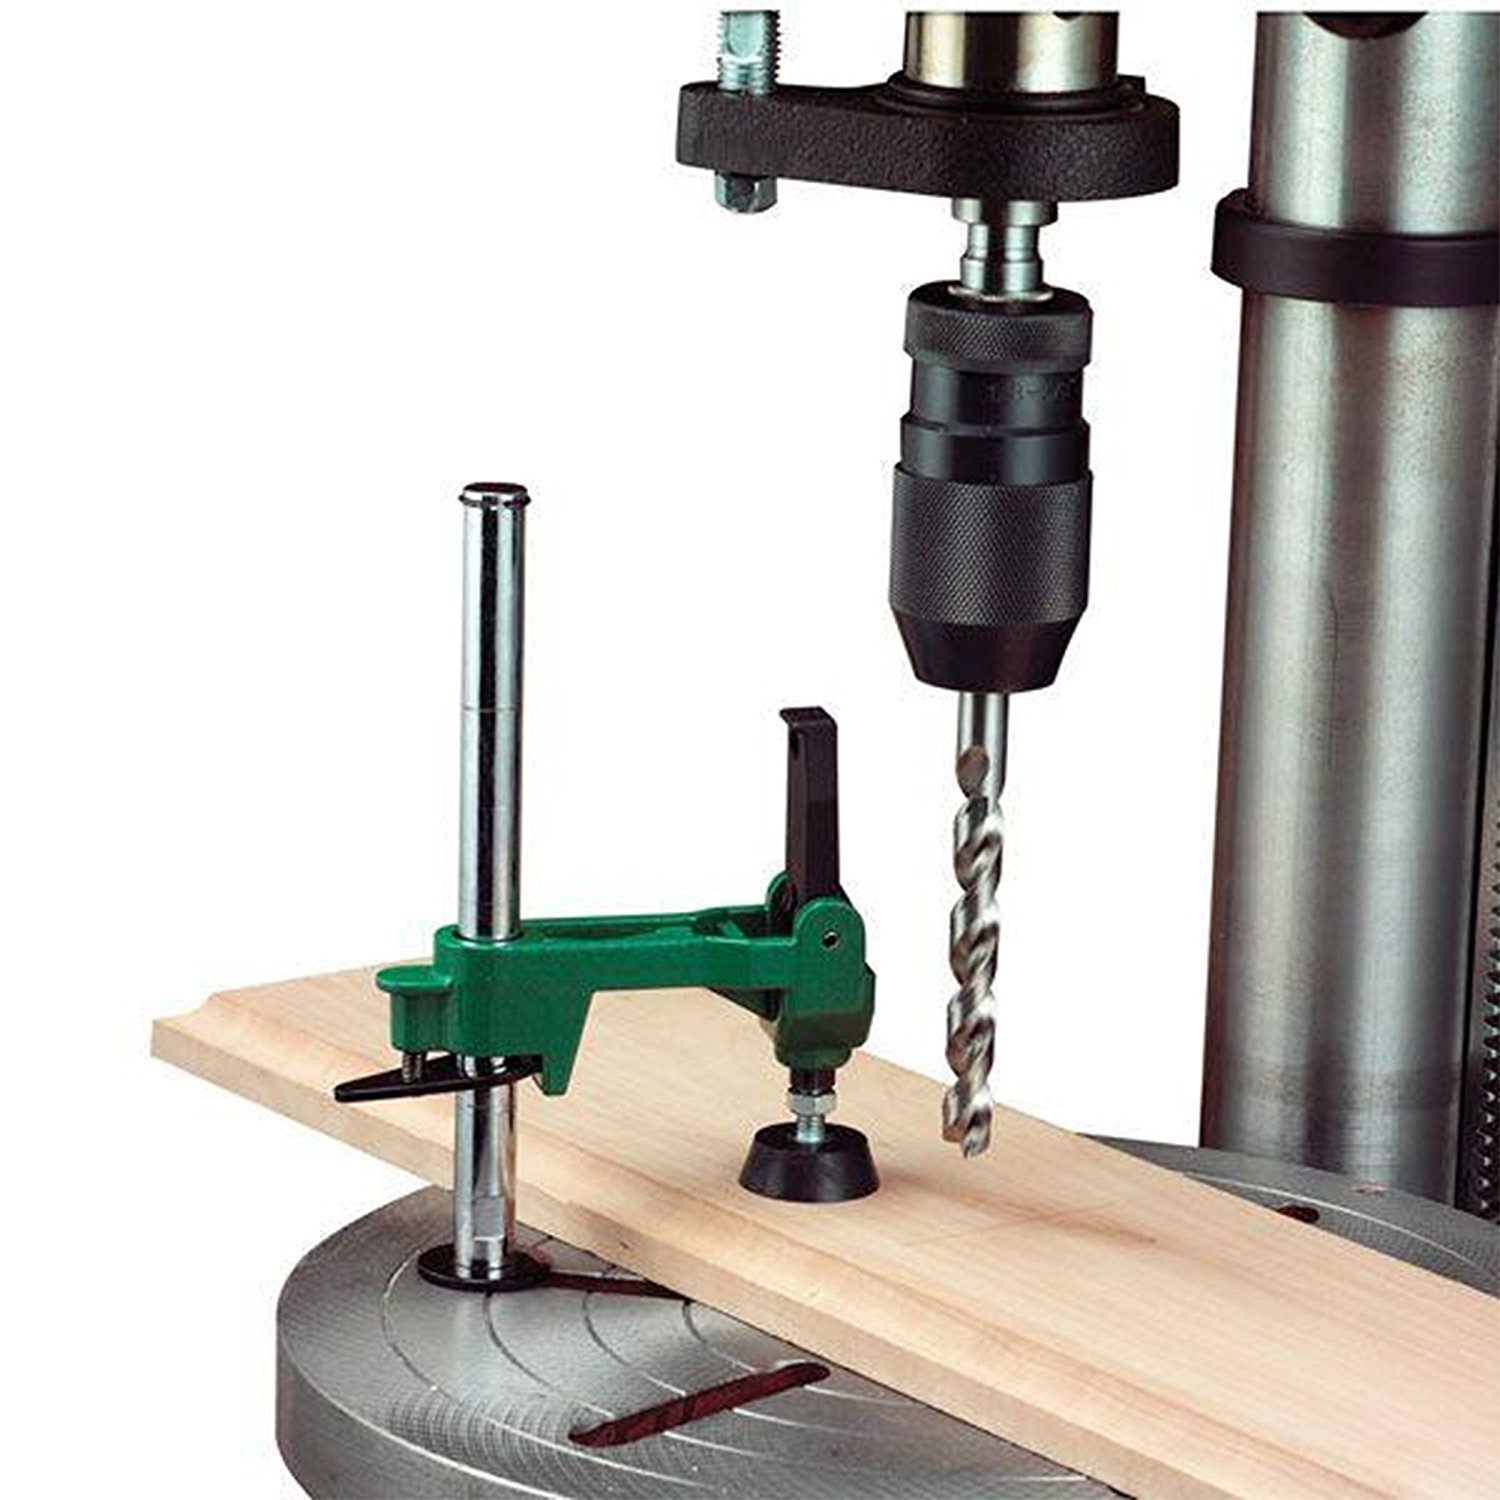 Quick Set drill press